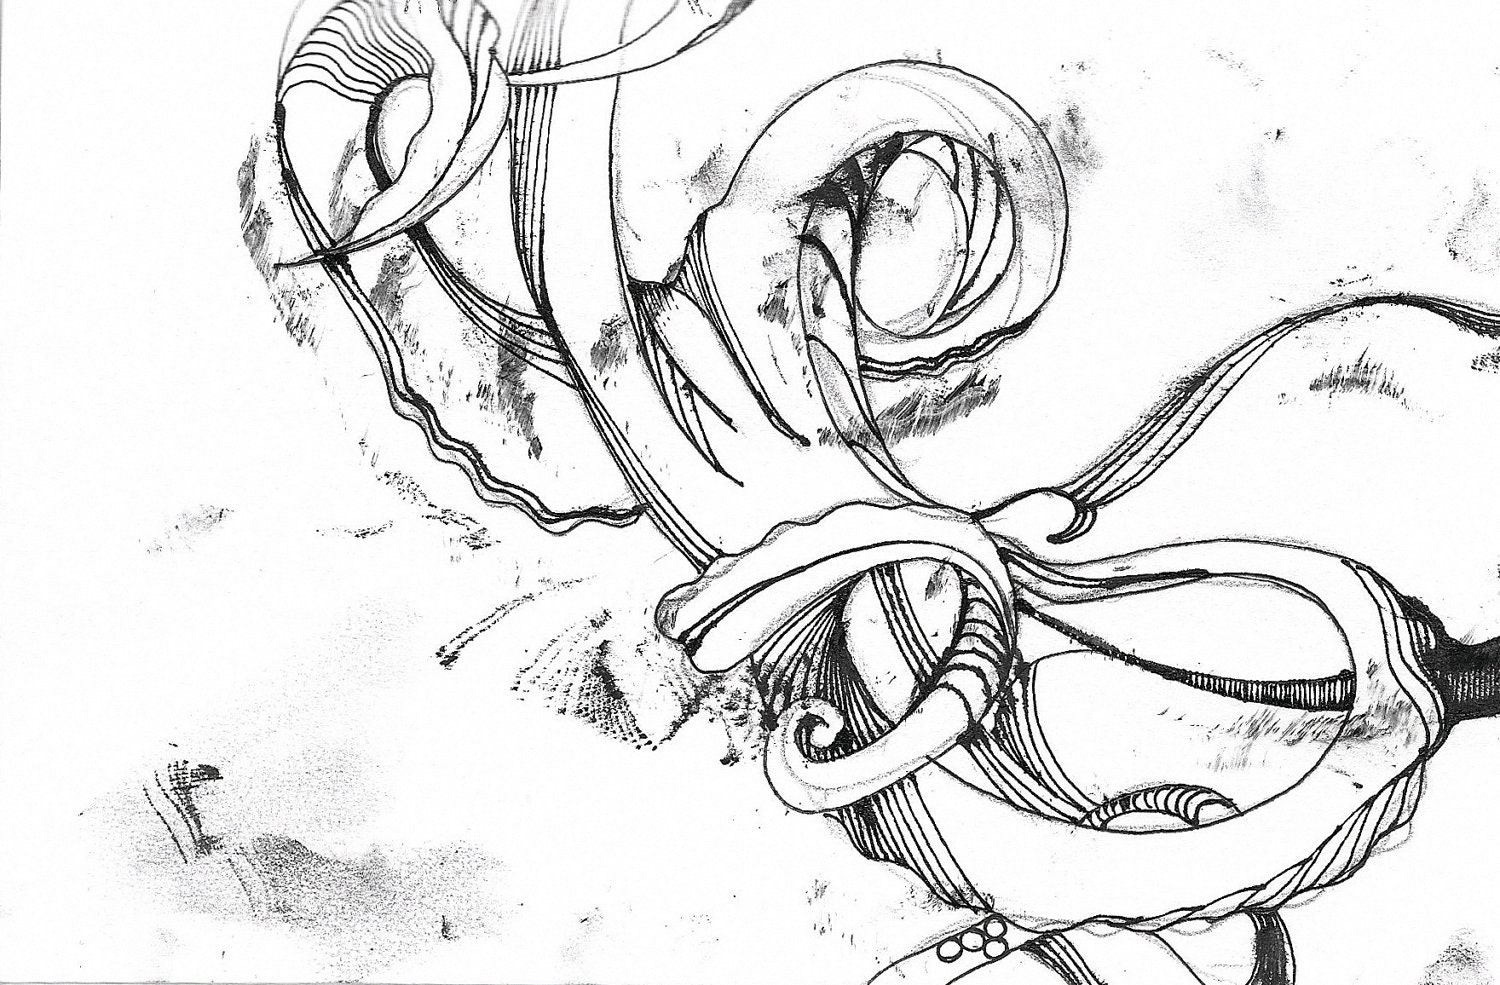 Black And White Octopus Drawing Octopus drawing - leaking